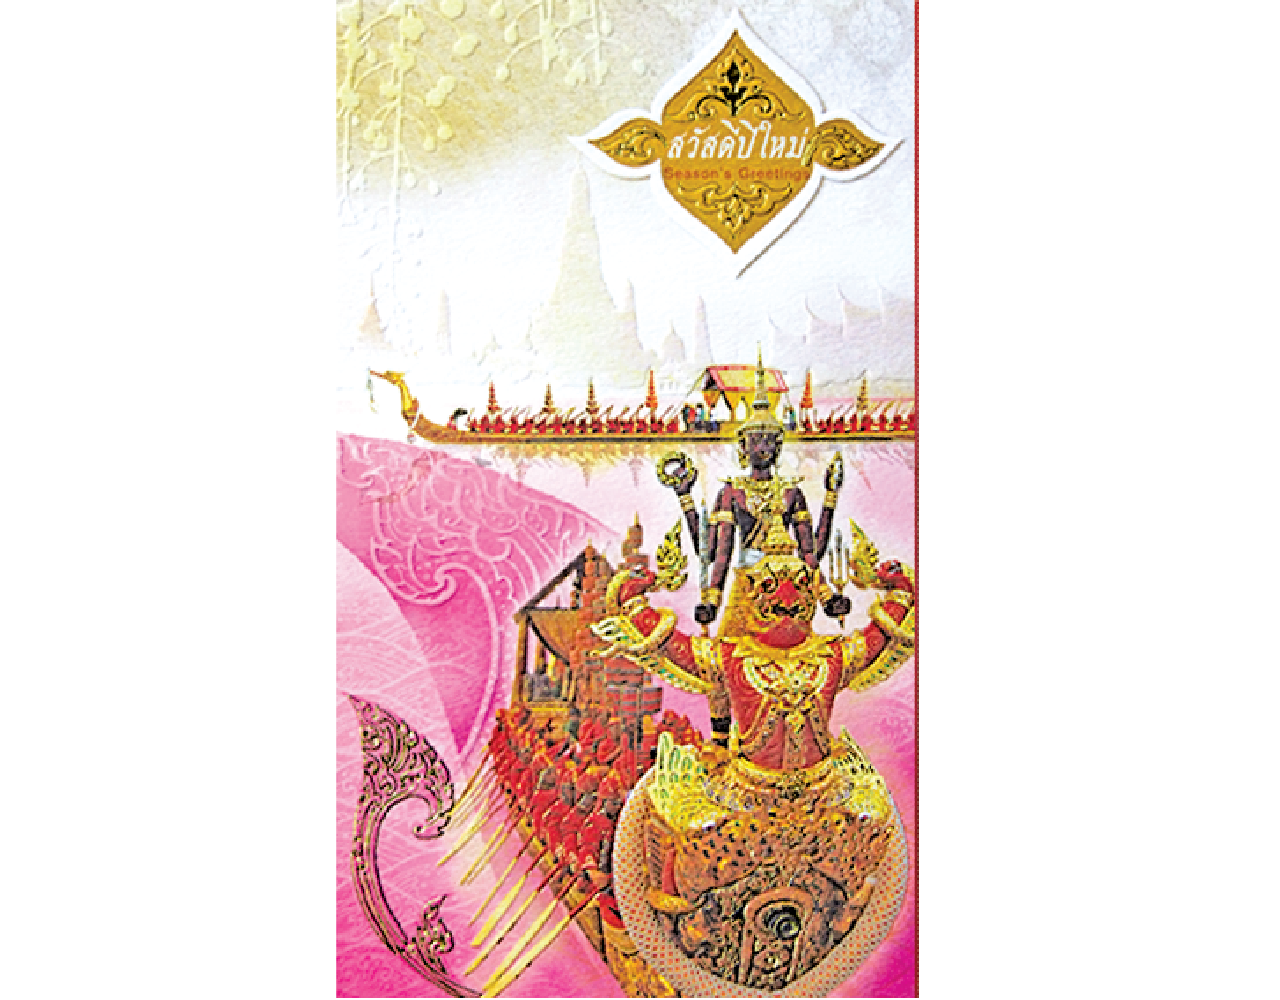 New year card 8×4 inch P 211 ฿ 16.00